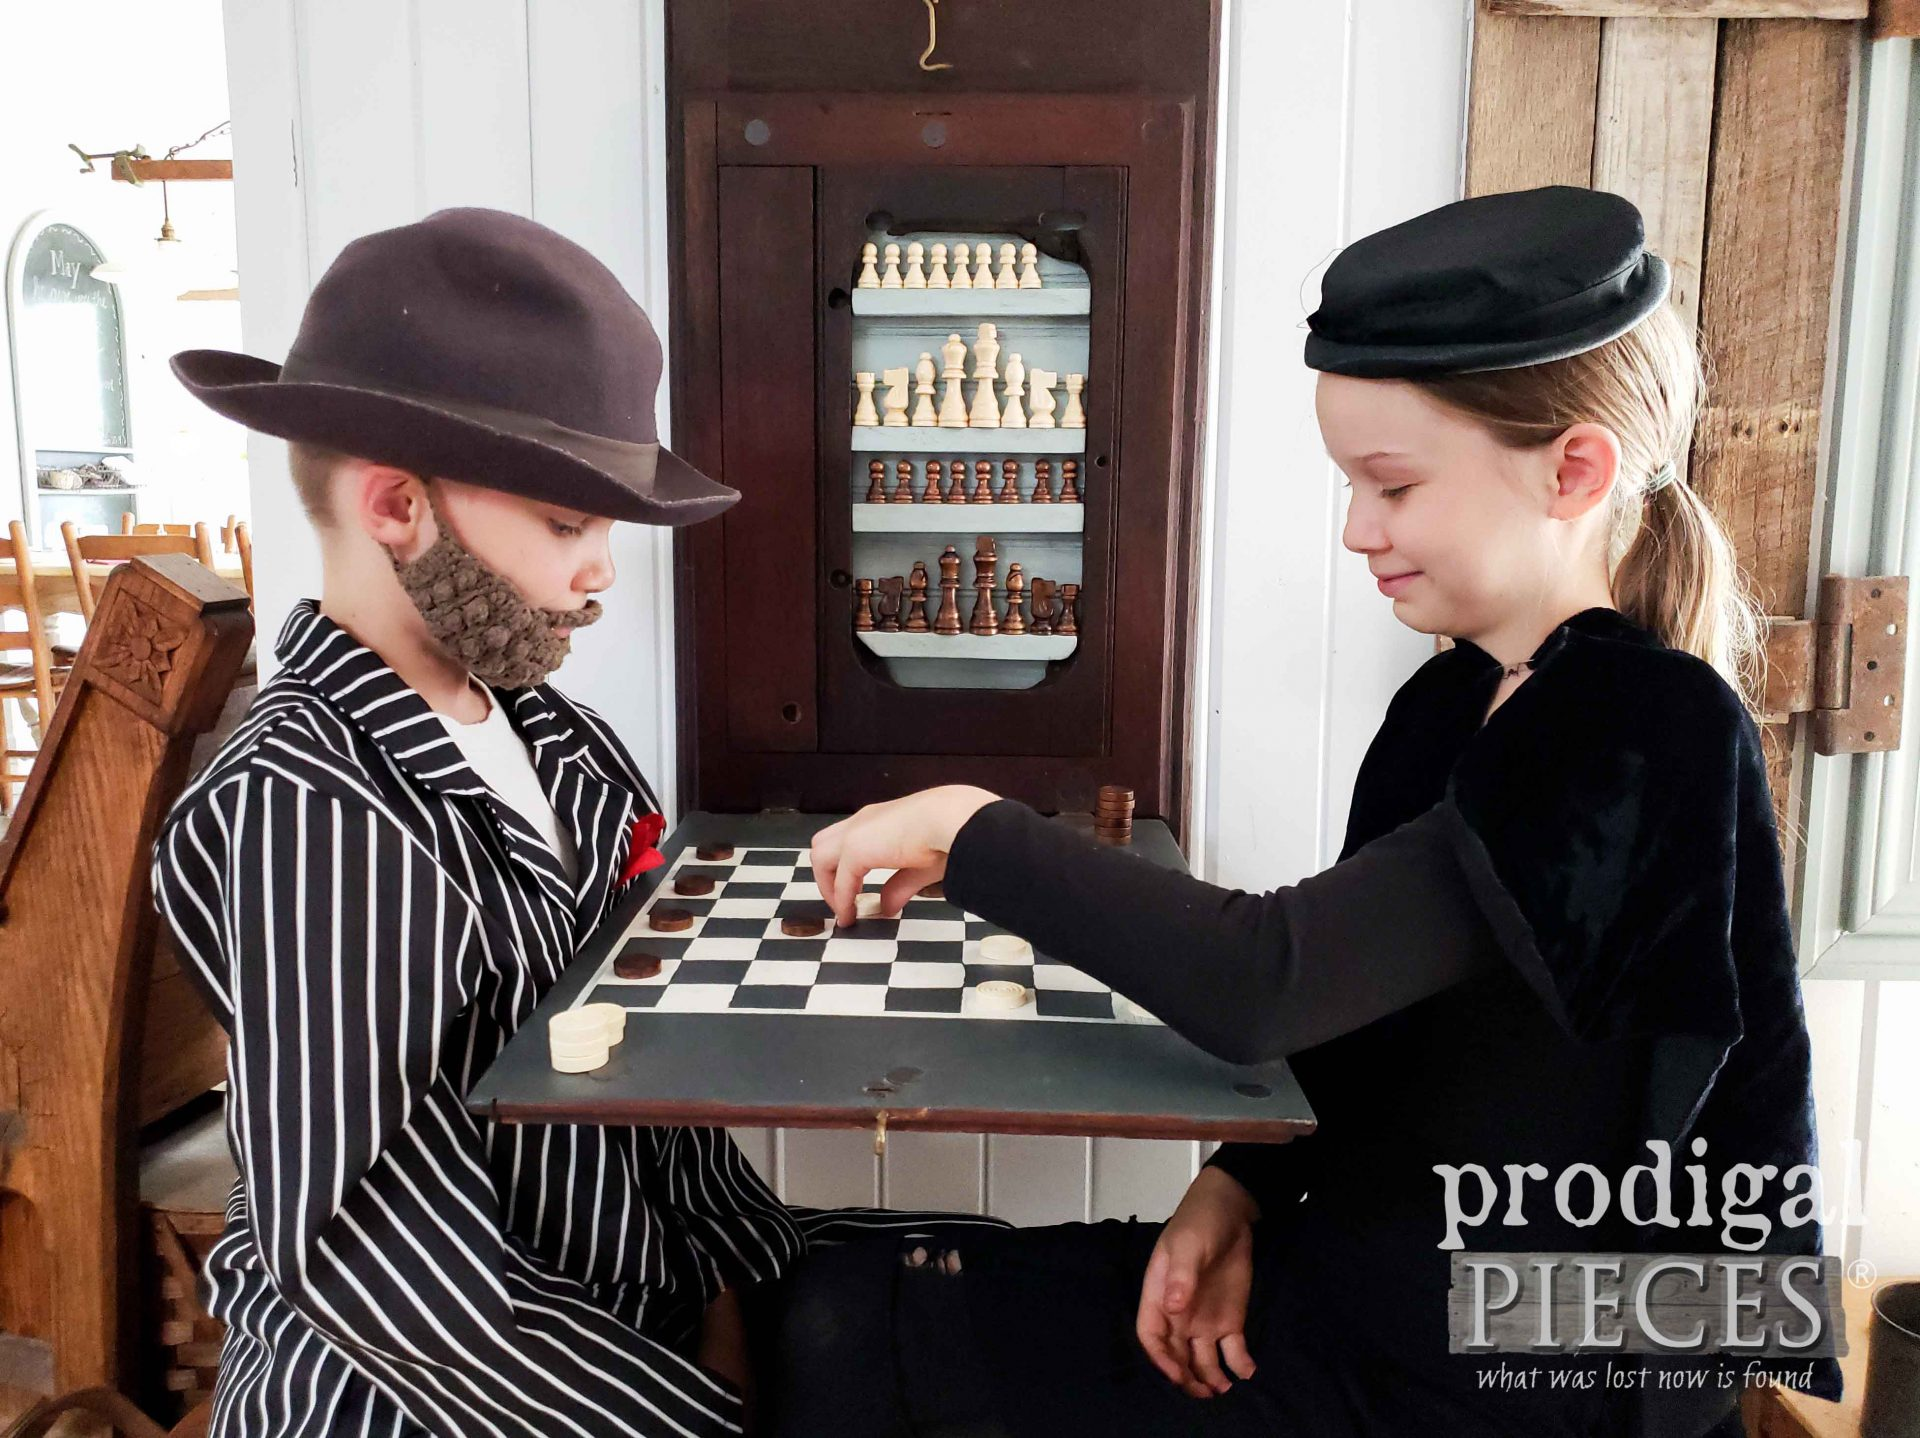 Upcycled Sewing Machine Top is Transformed into a Created Chess & Checkerboard Set by Larissa of Prodigal Pieces | prodigalpieces.com #prodigalpieces #diy #farmhouse #handmade #home #homedecor #toys